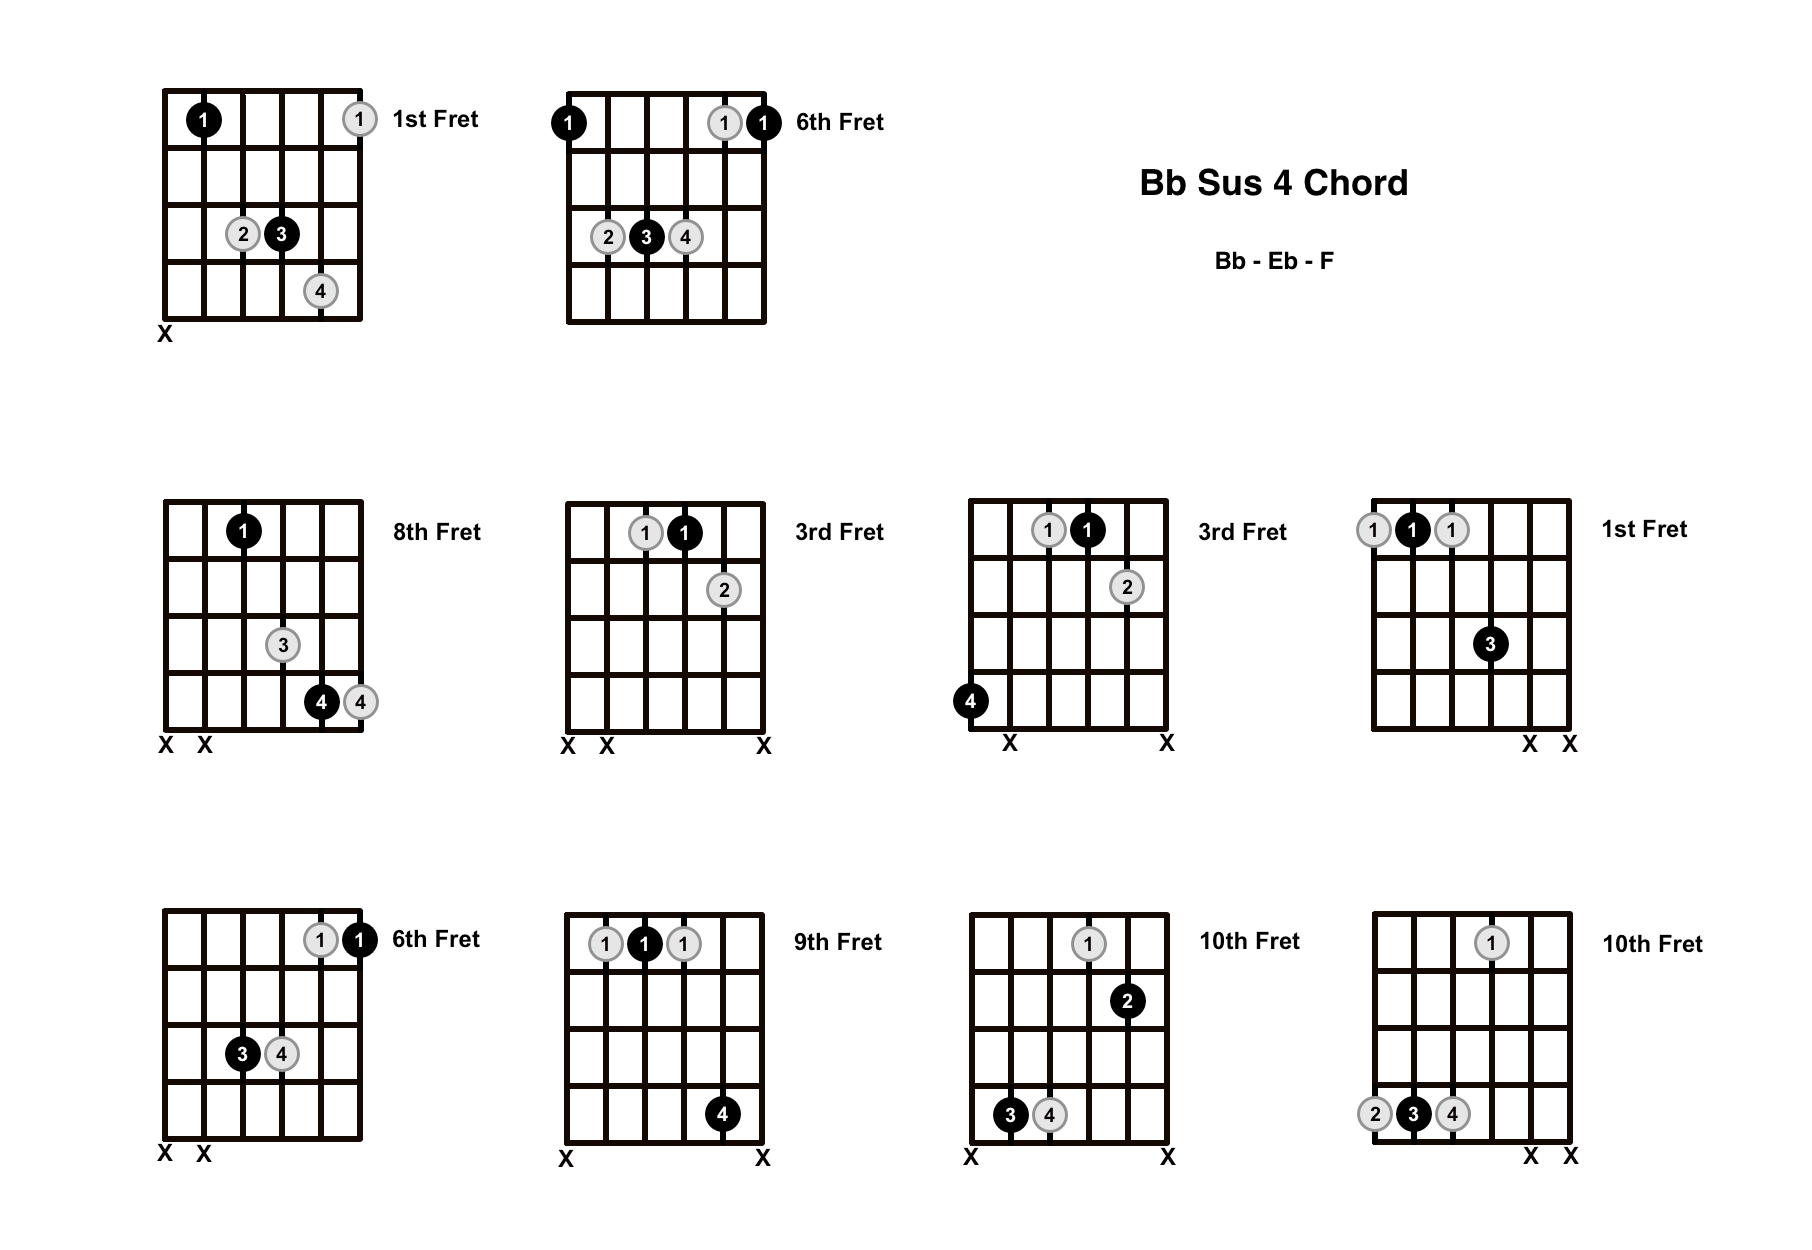 Bb Sus 4 Chord On The Guitar (B Flat Suspended 4) – Diagrams, Finger Positions and Theory